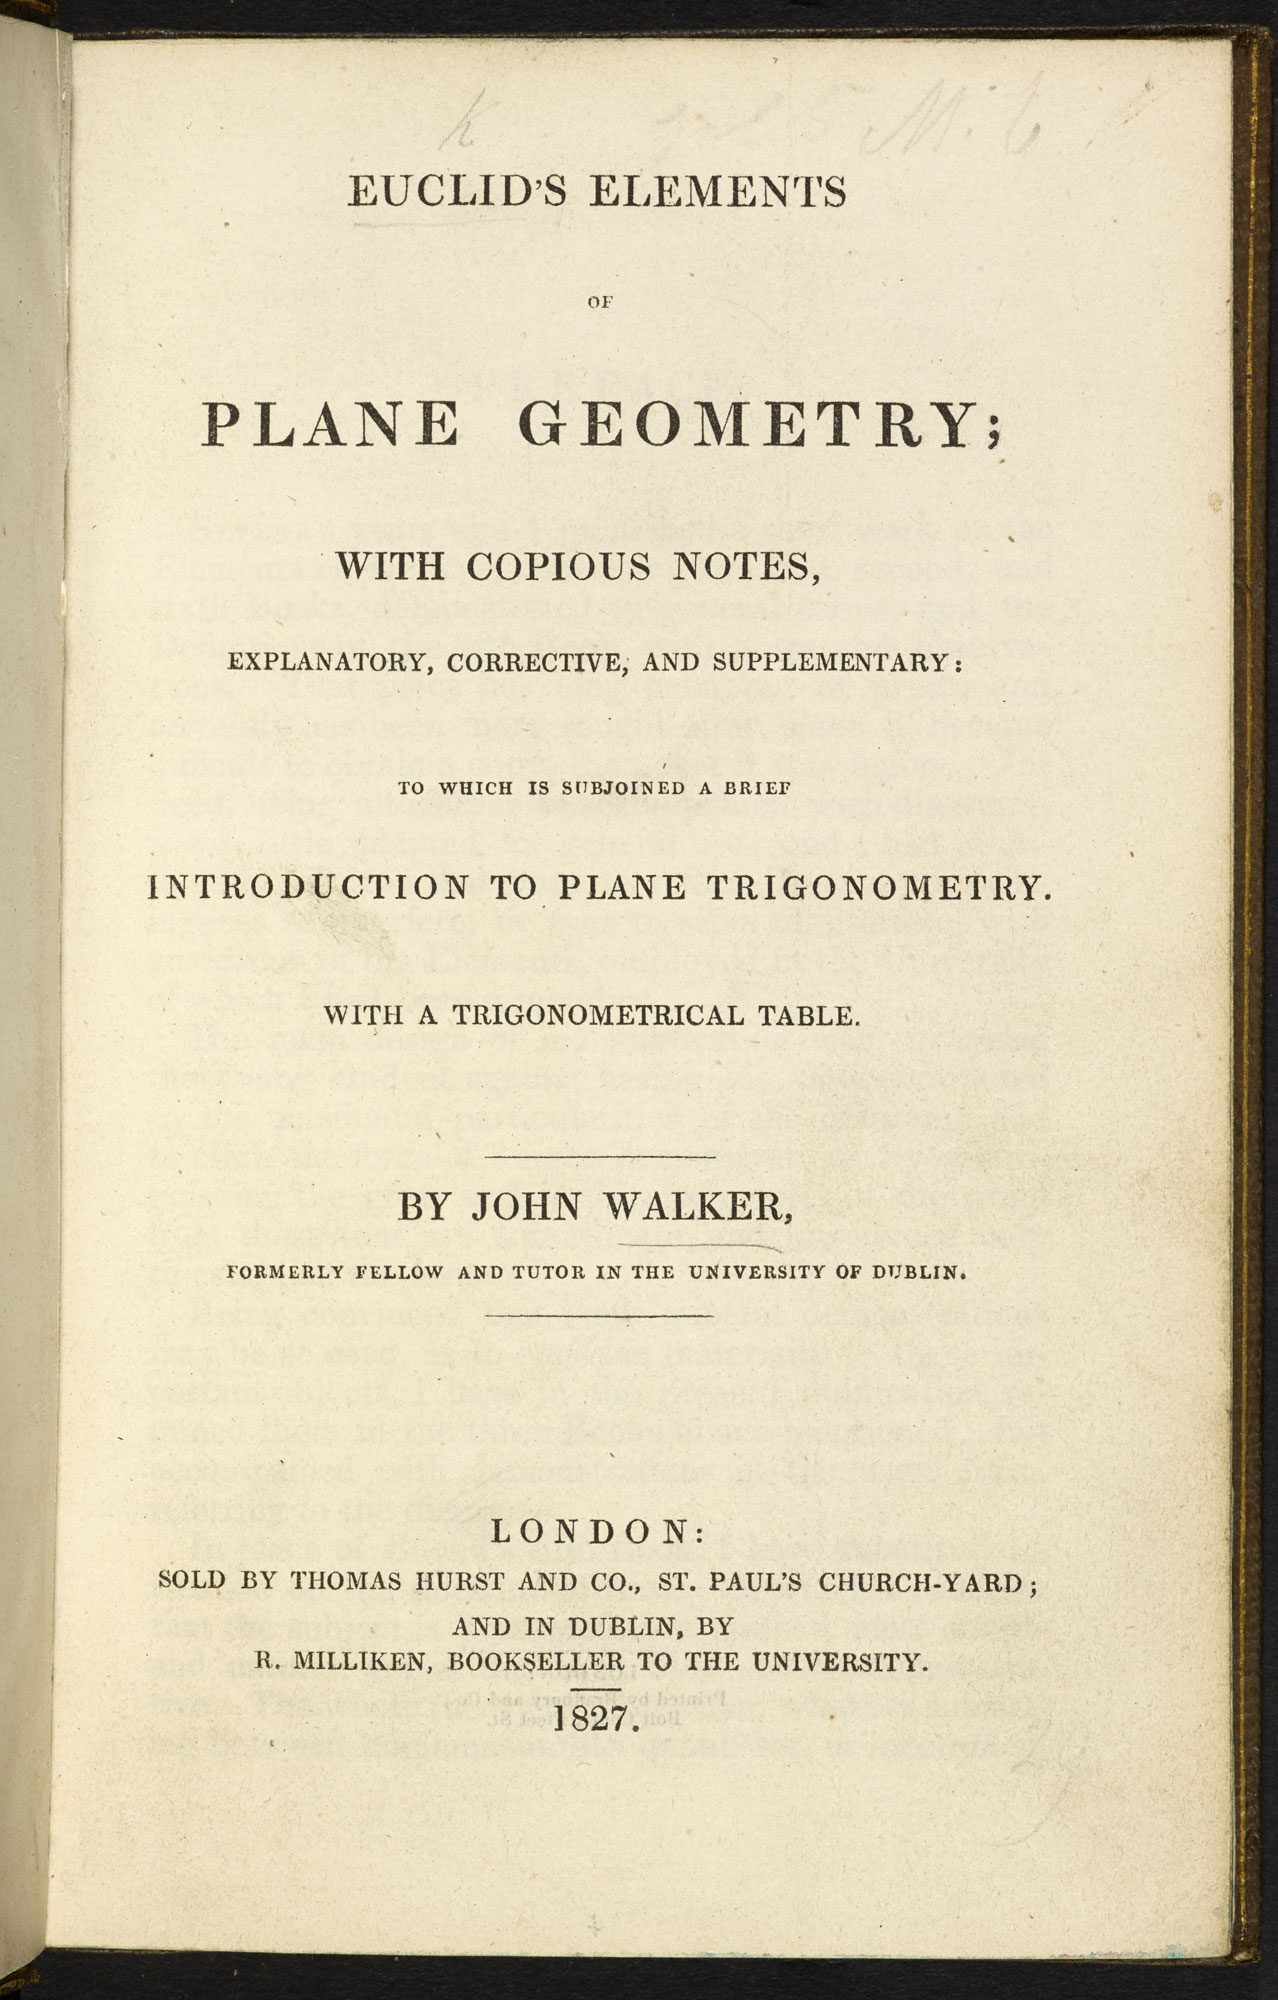 Euclid's Elements of Plane Geometry [page: title page]